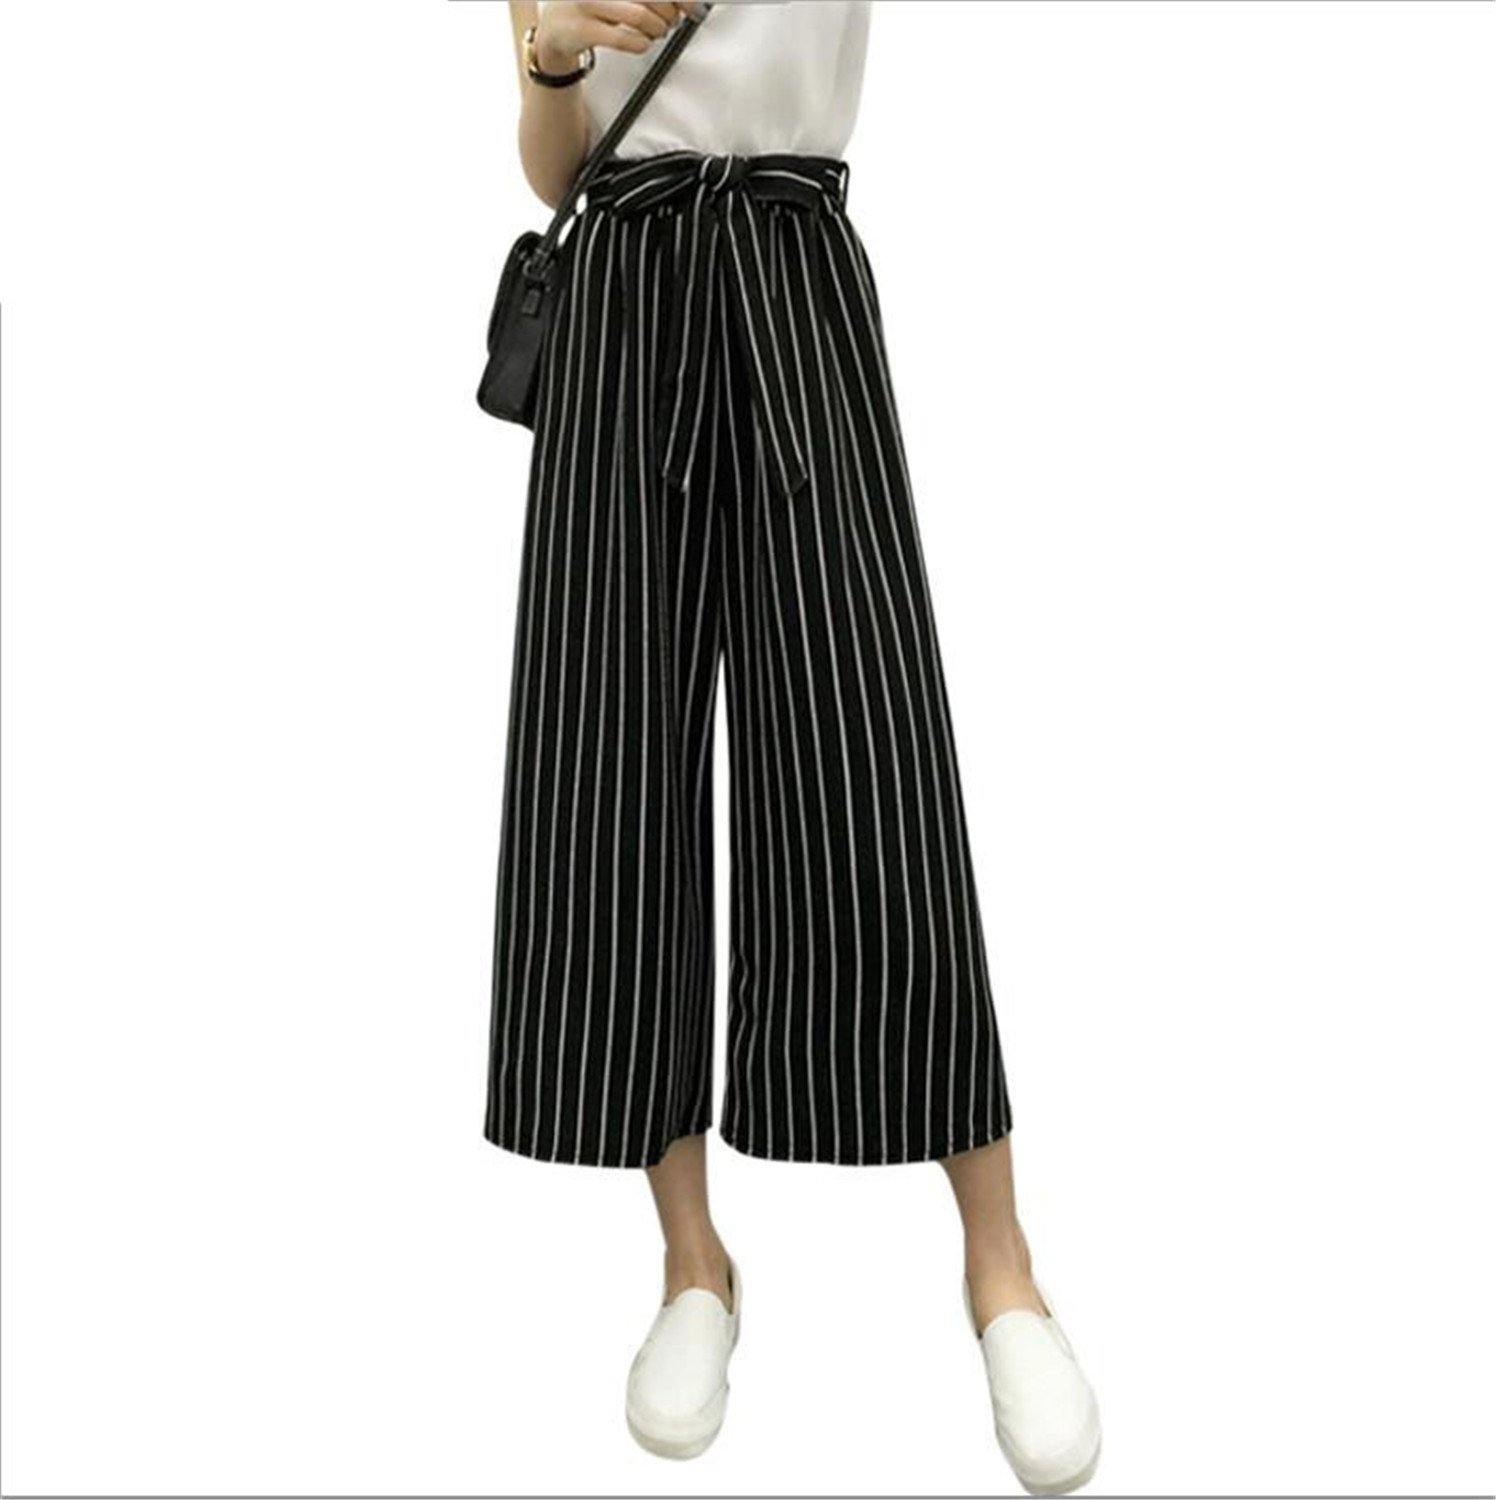 Fashion Summer Hot Selling Ladies Office Trousers Loose Wide Leg Pants Woman High Waist OL Casual Office Pants for Women Fine Black Bars M by Rainlife pants (Image #1)